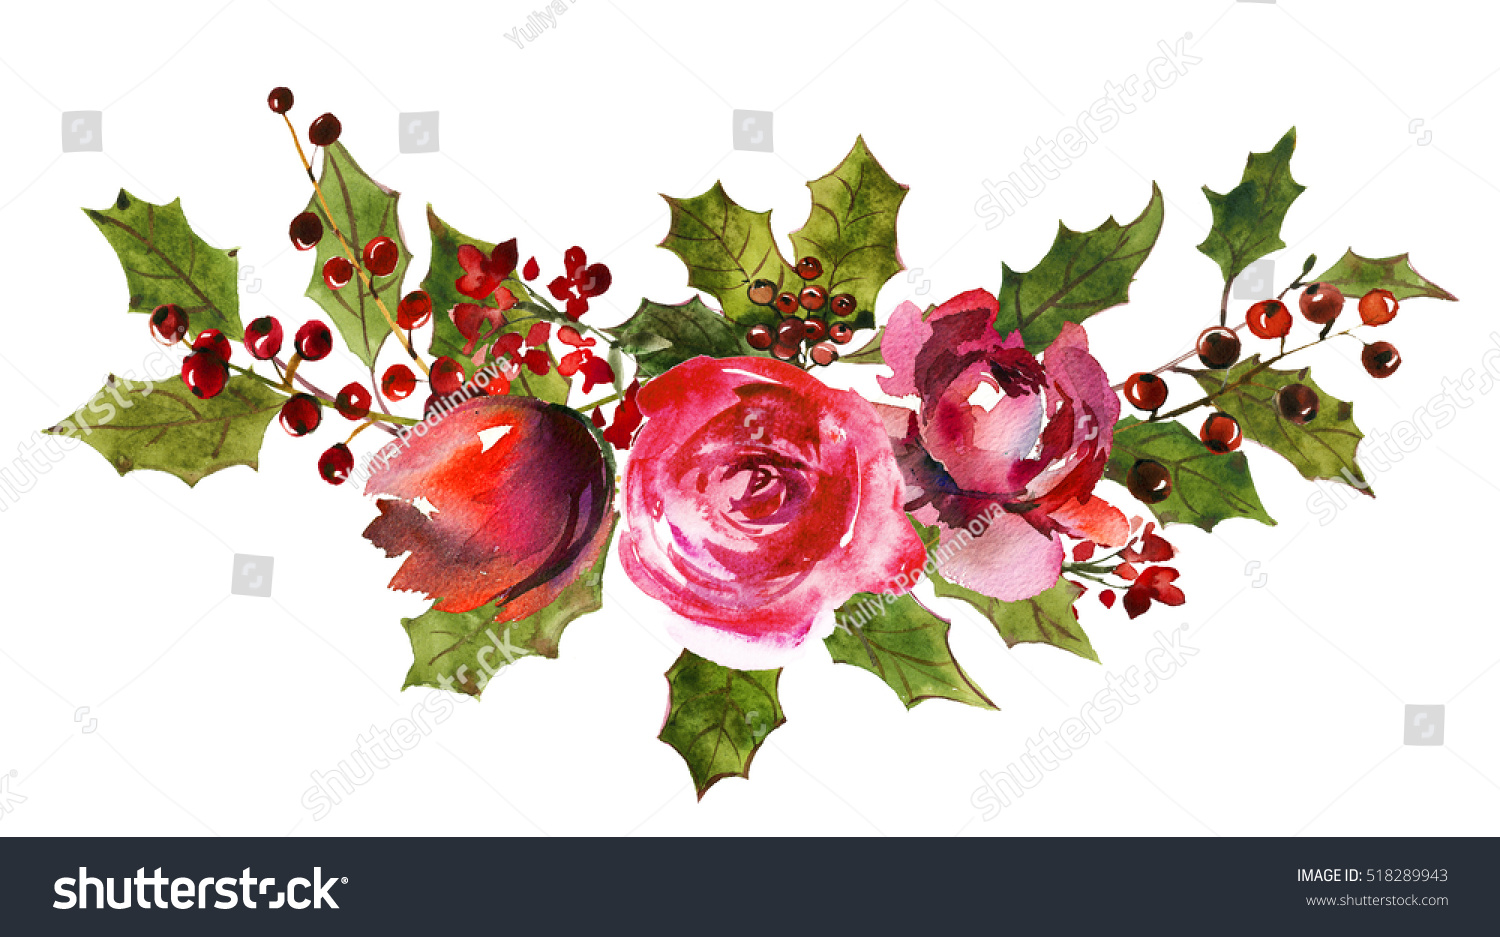 holly steams bouquet red white flowers stock illustration 518289943